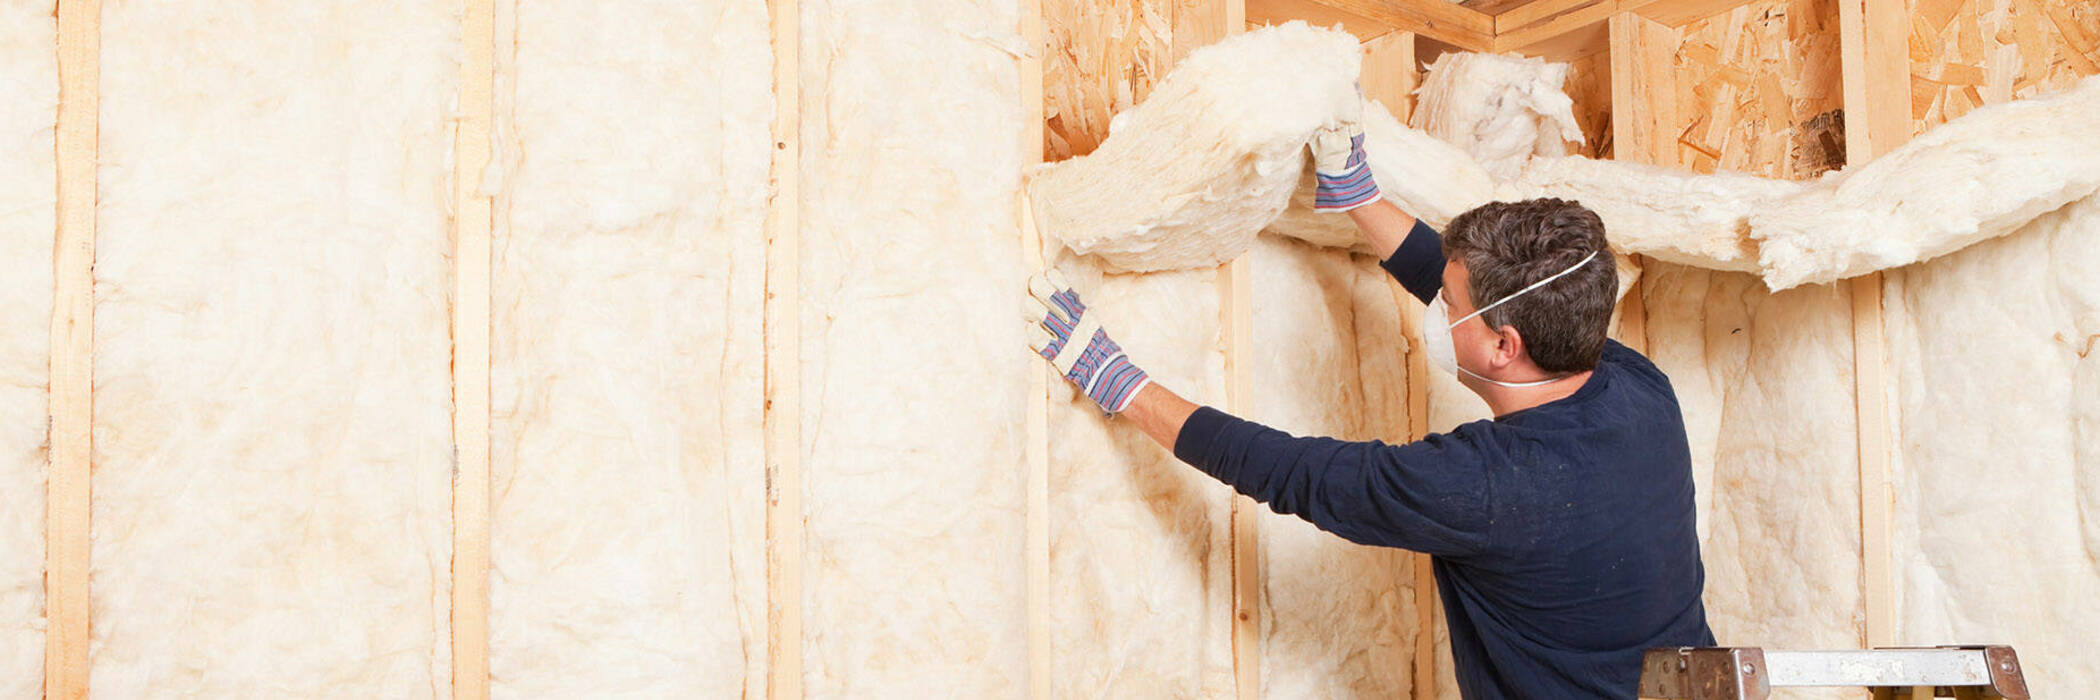 Man insulating a wall